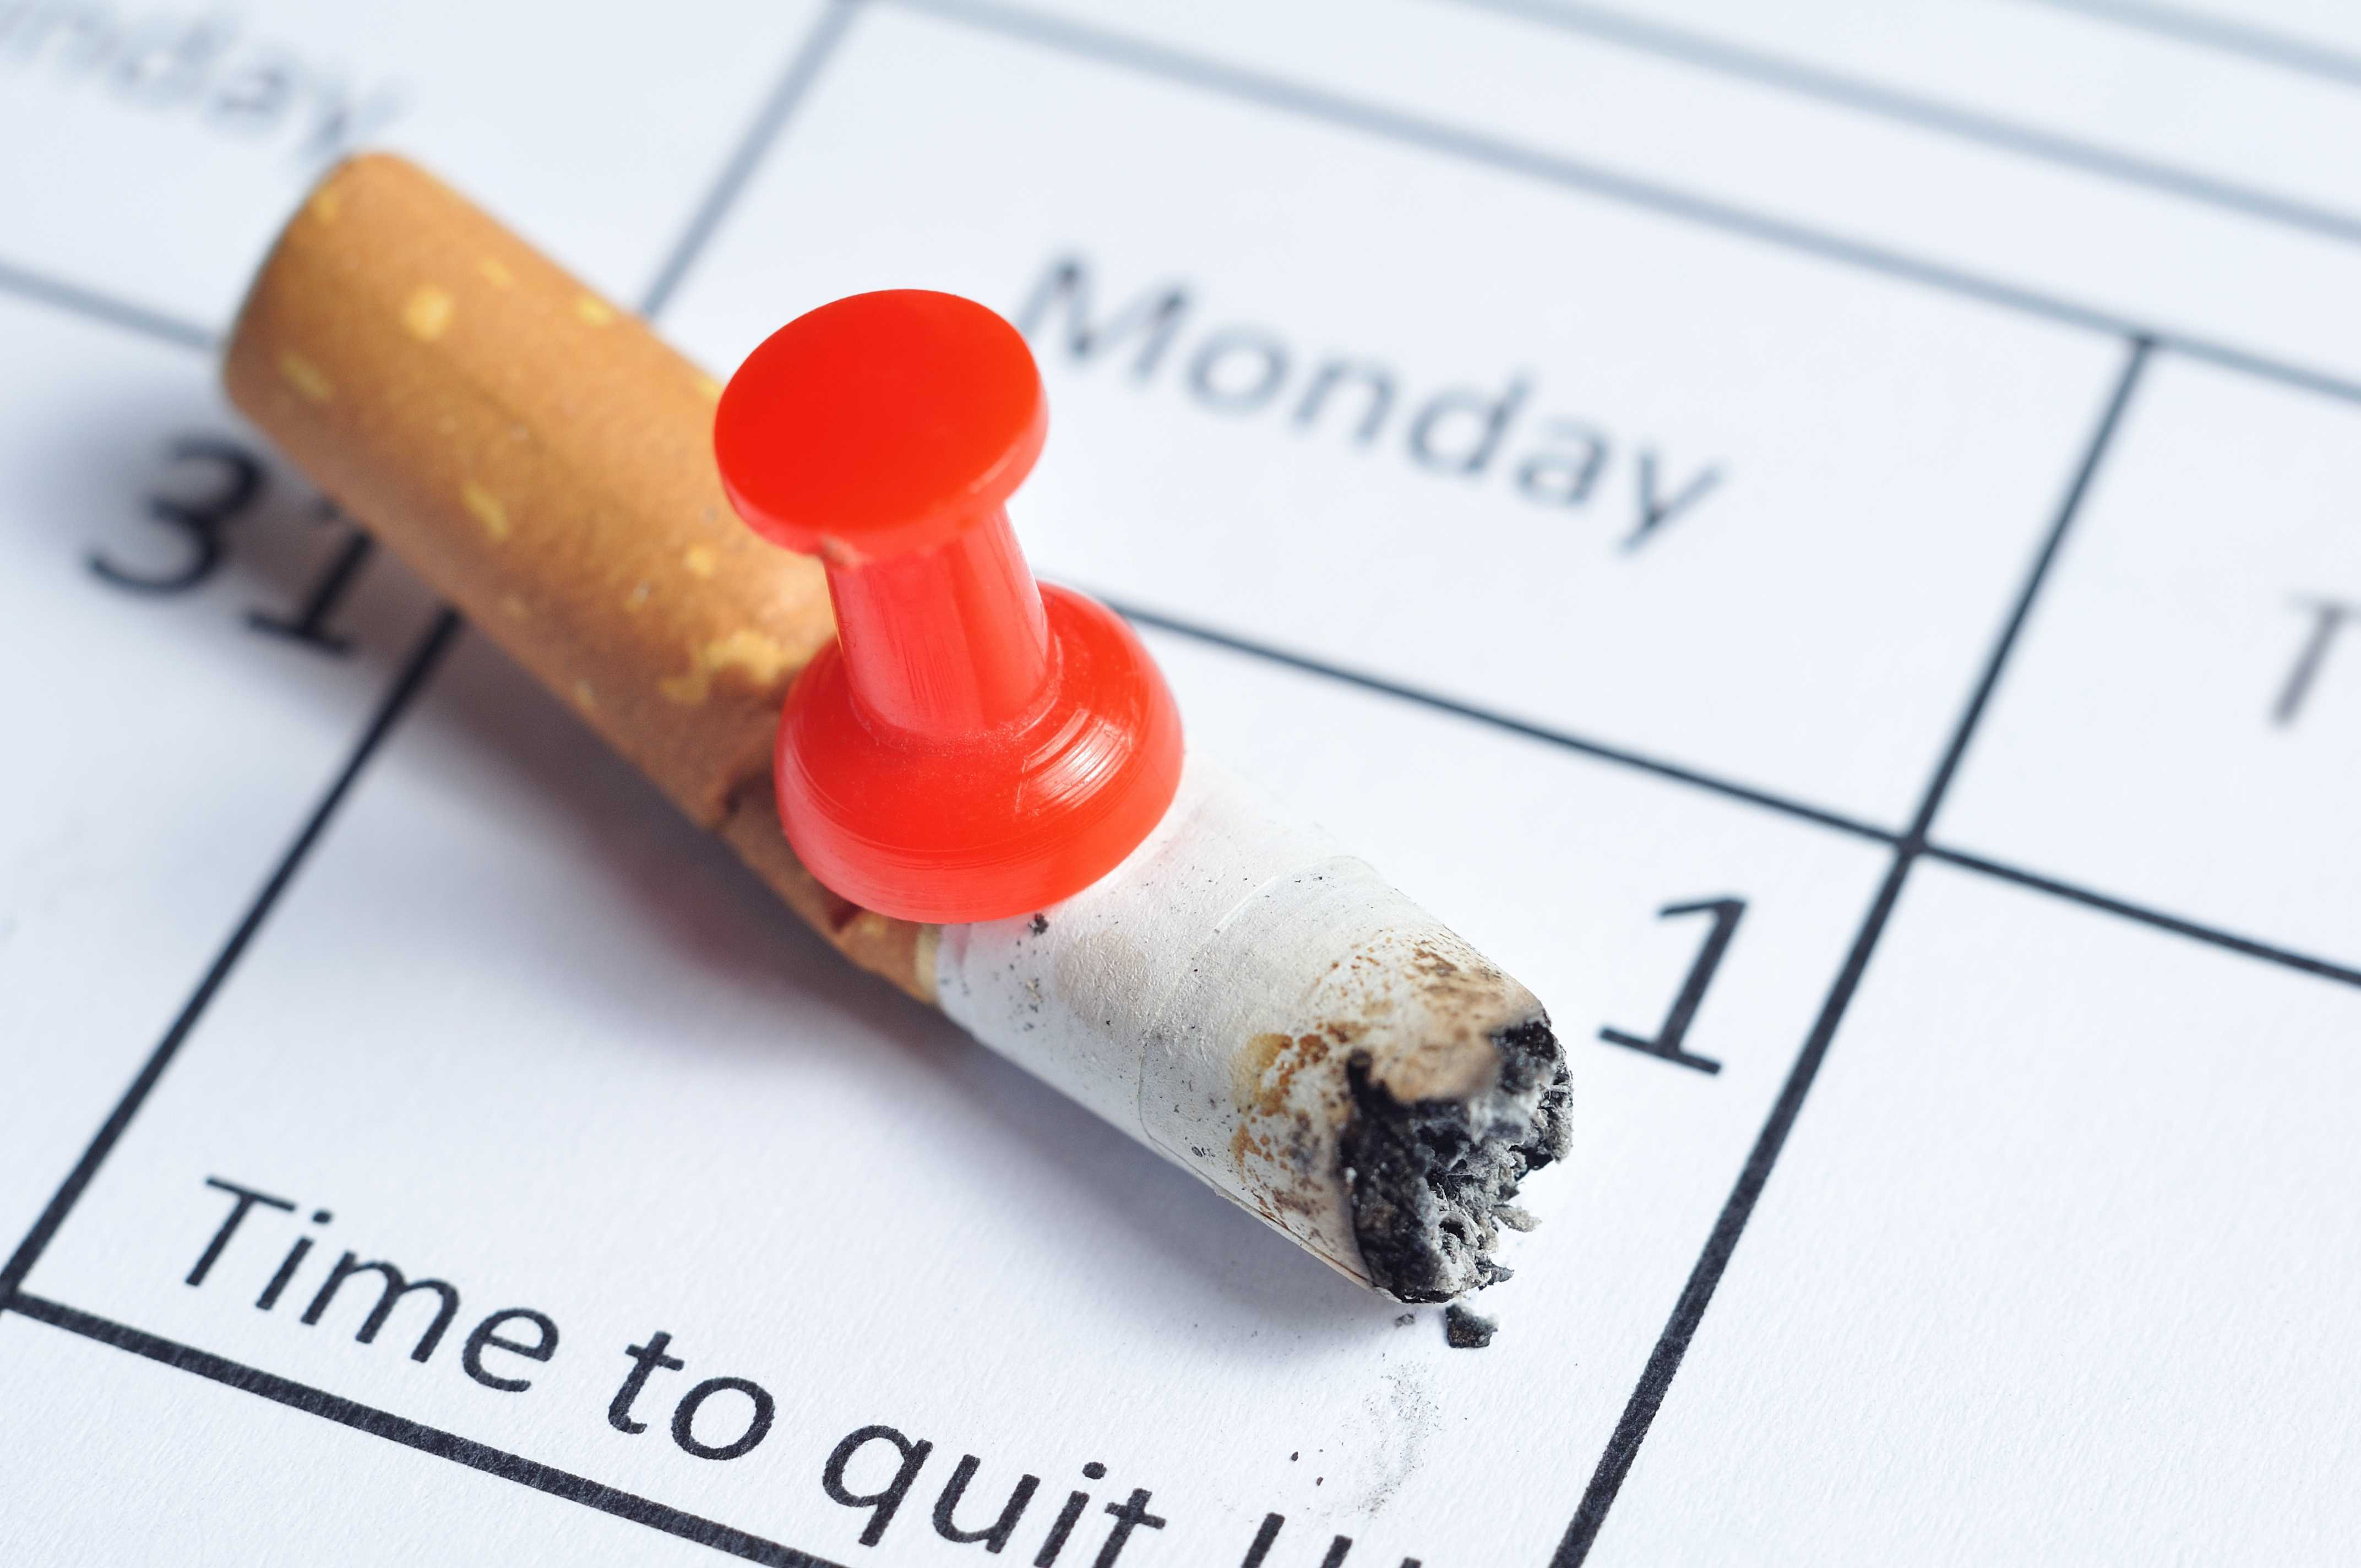 It's Easier to Quit Smoking when You have Support